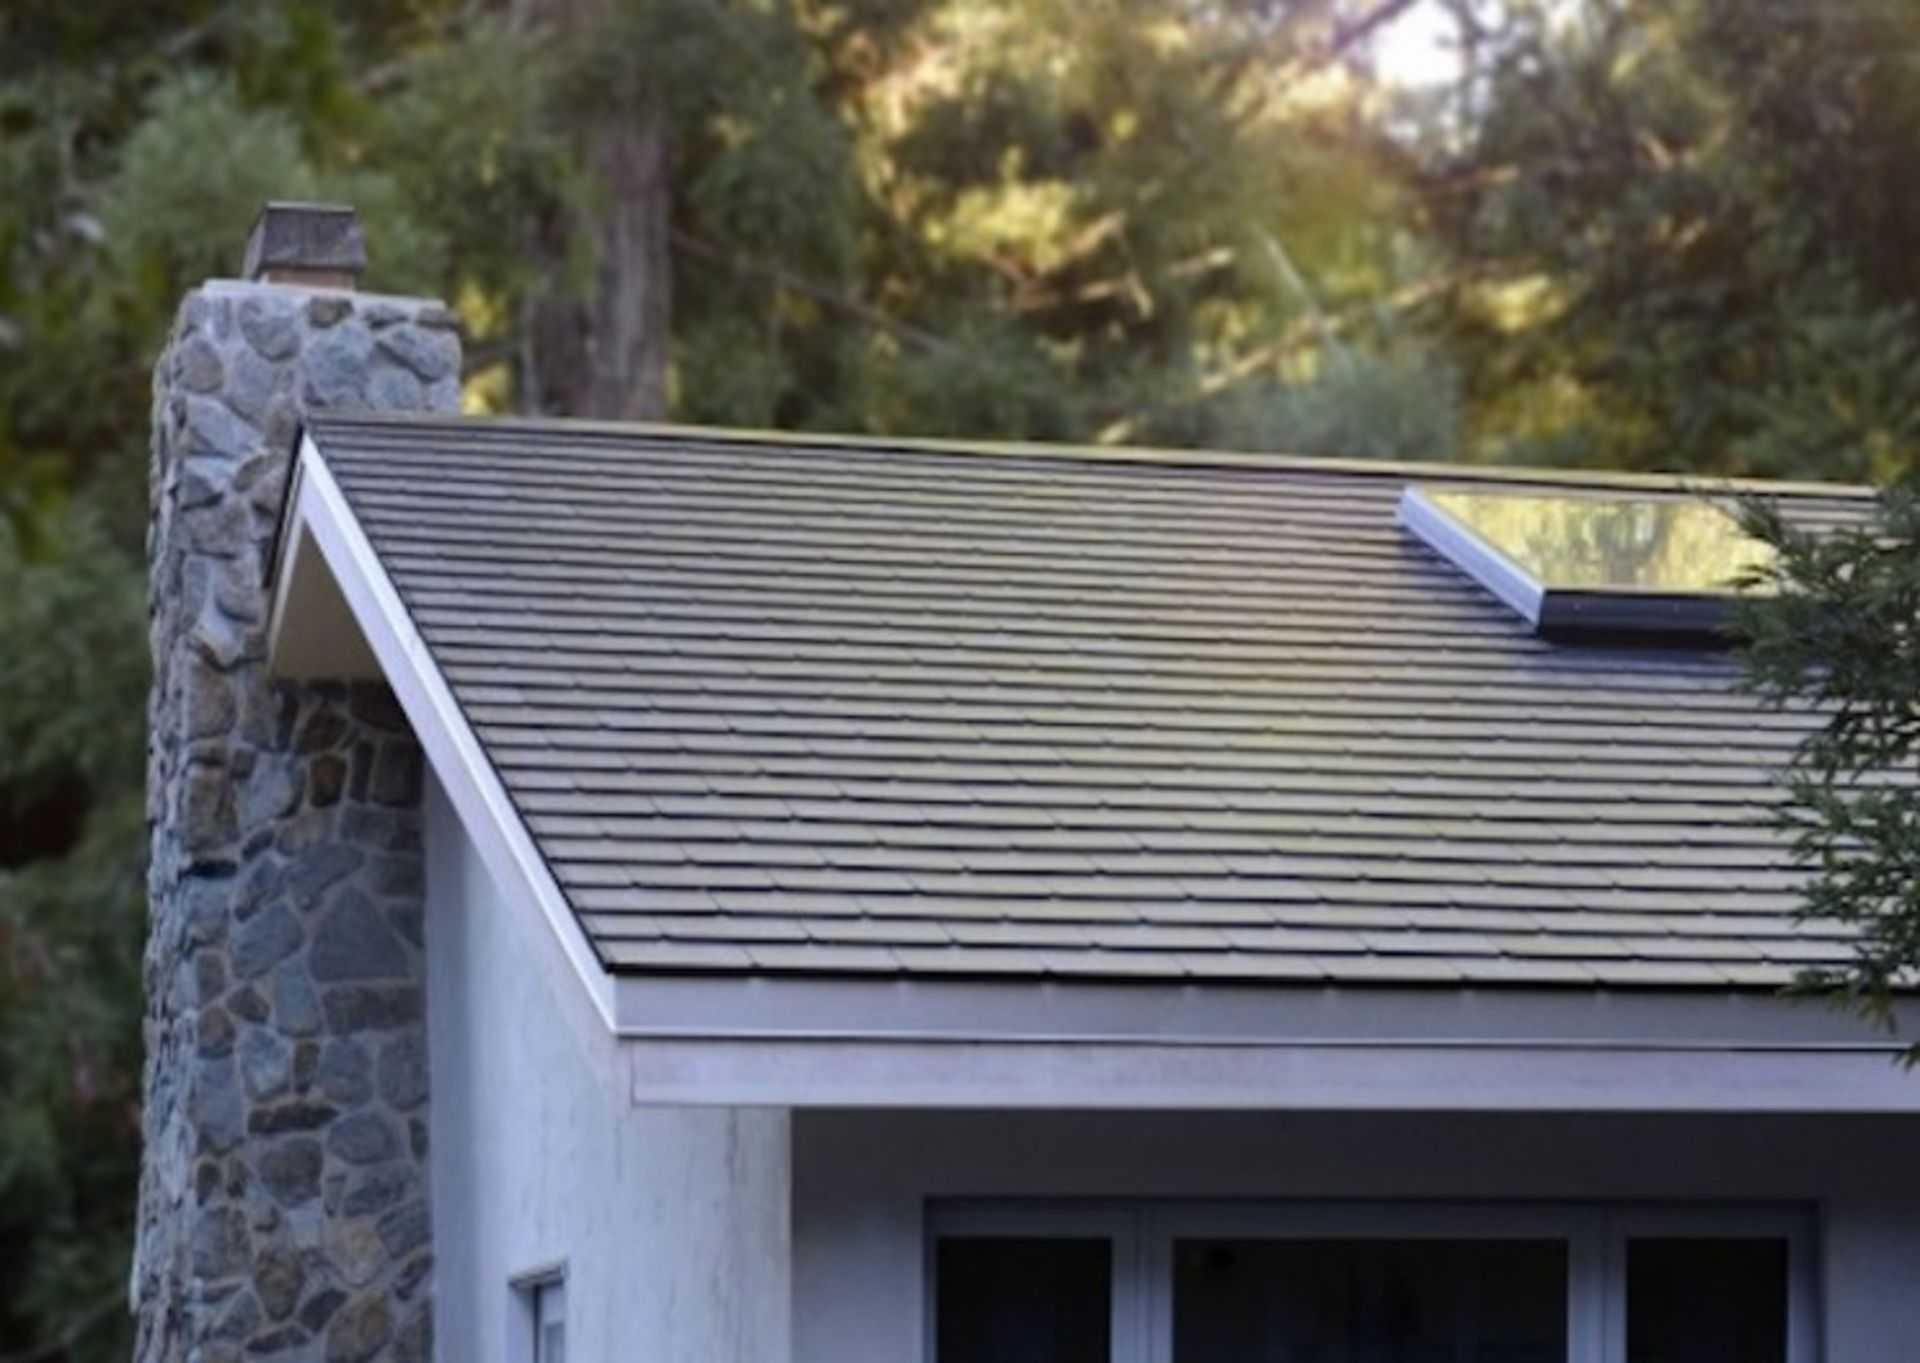 Tesla's First Solar Roof Tiles Are Installed and They Look Stunning